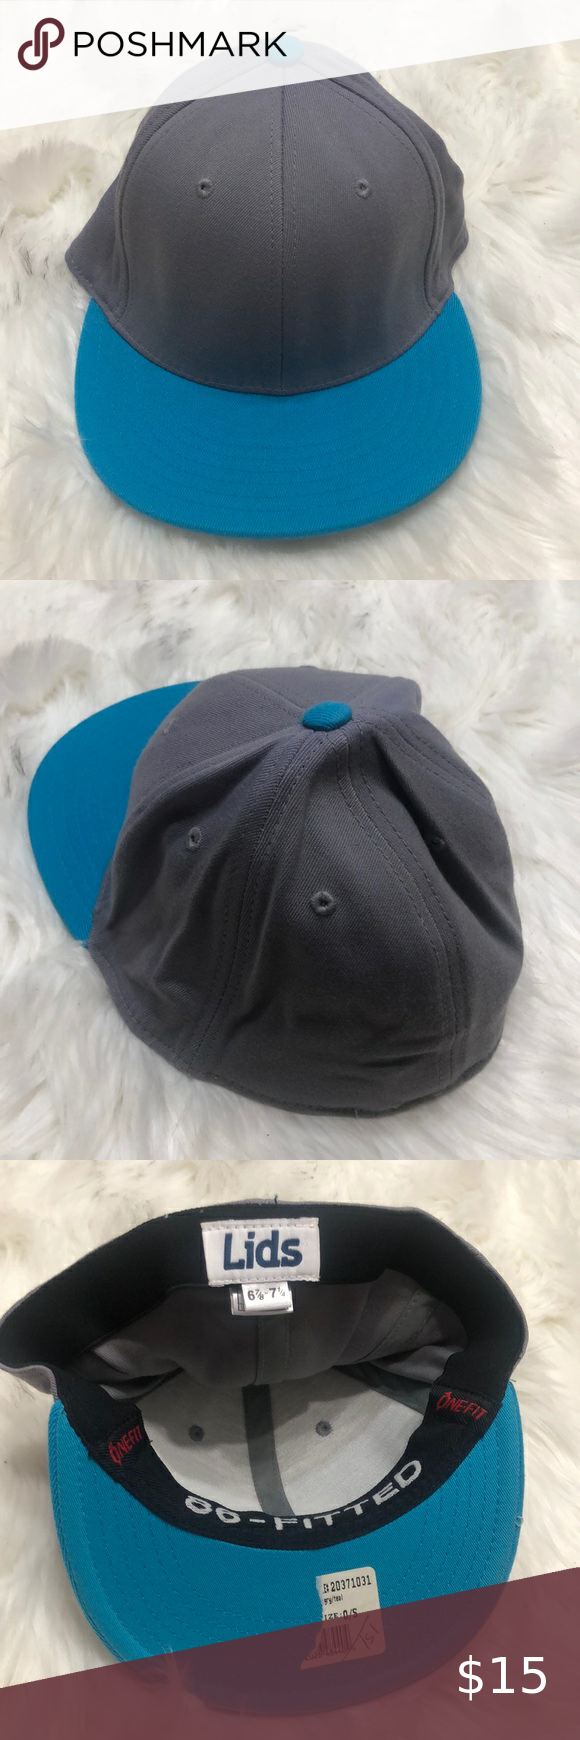 Lids 86 Fitted One For Blue Gray Hat 6 7 8 7 1 4 In 2021 Fitted Hats Blue Grey Grey Hat